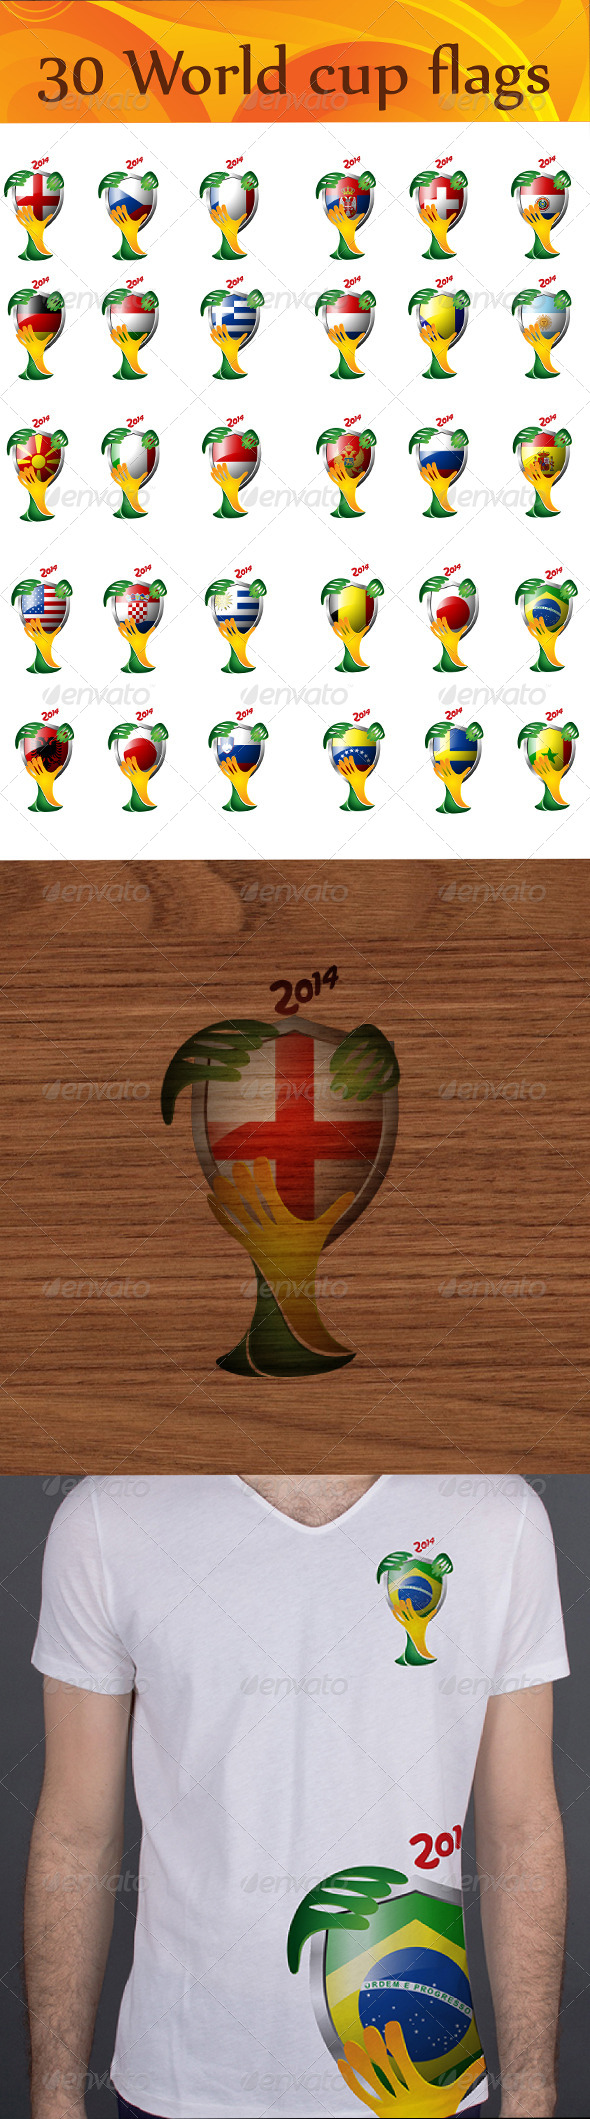 GraphicRiver 30 World Flags for 2014 Brazil World Cup 5170394